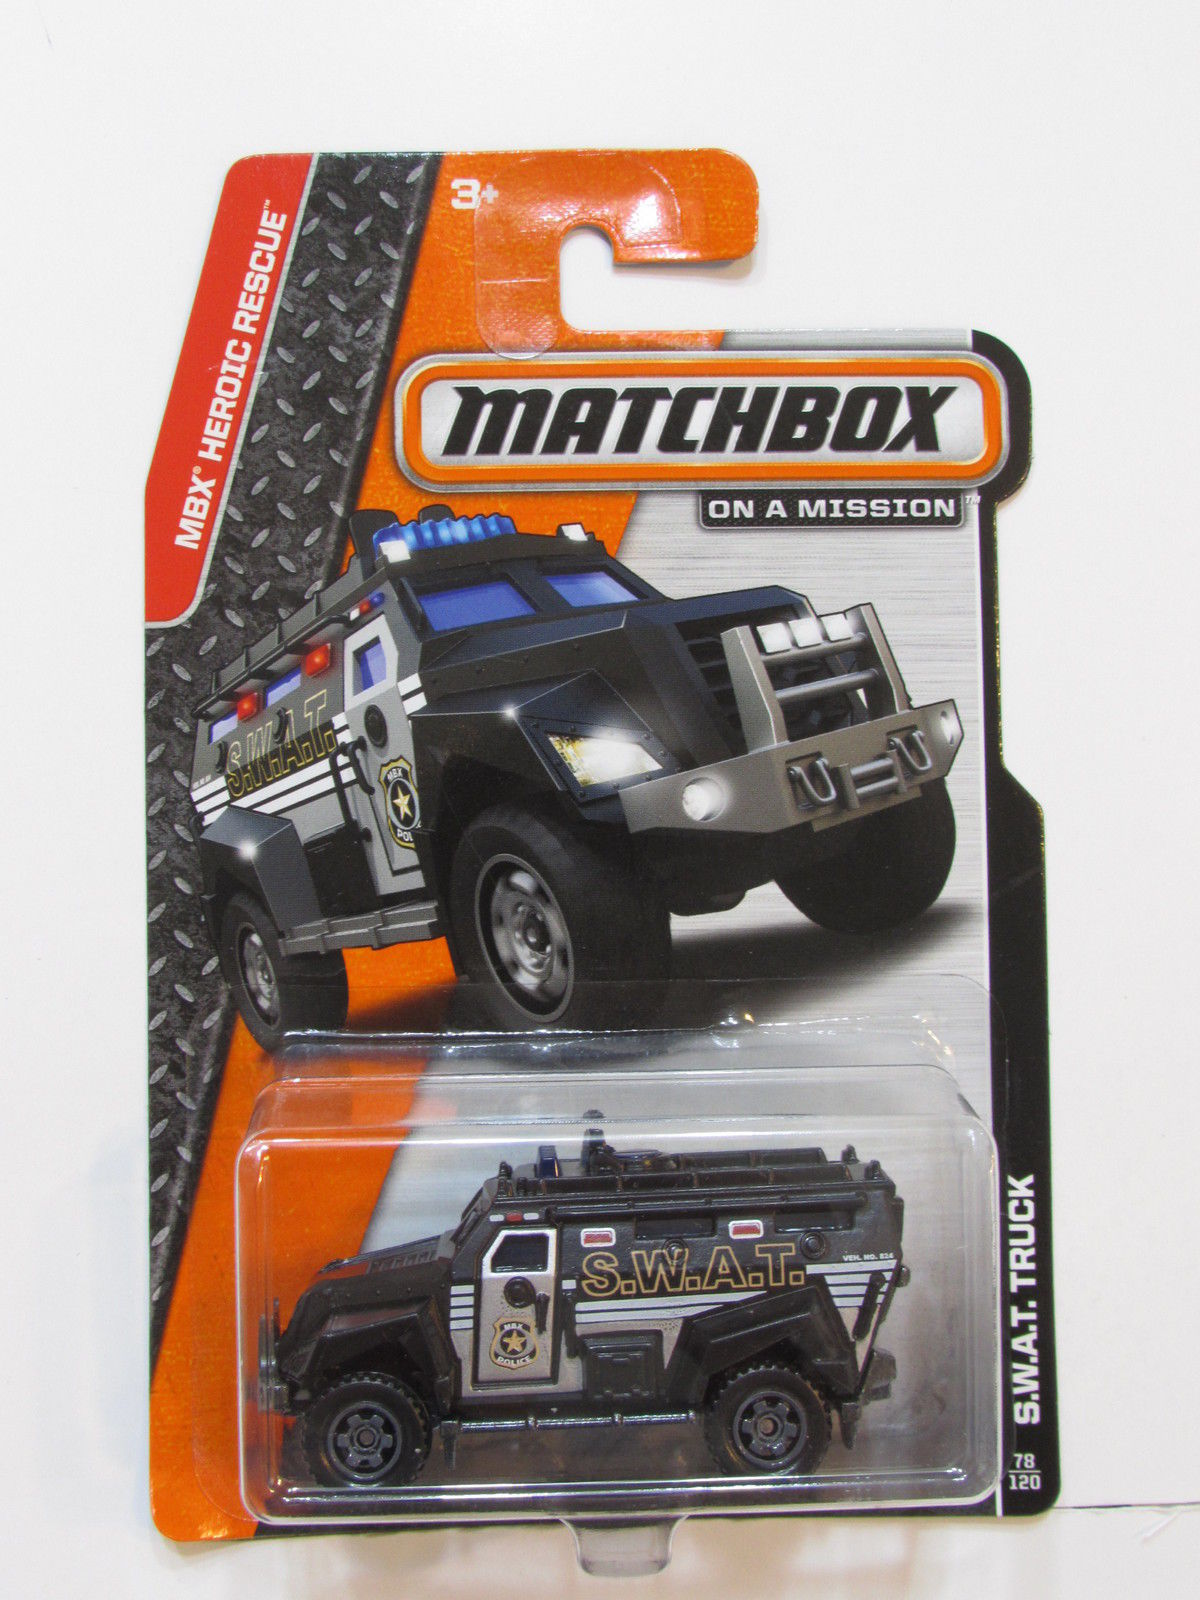 MATCHBOX 2014 ON A MISSION S.W.A.T. TRUCK